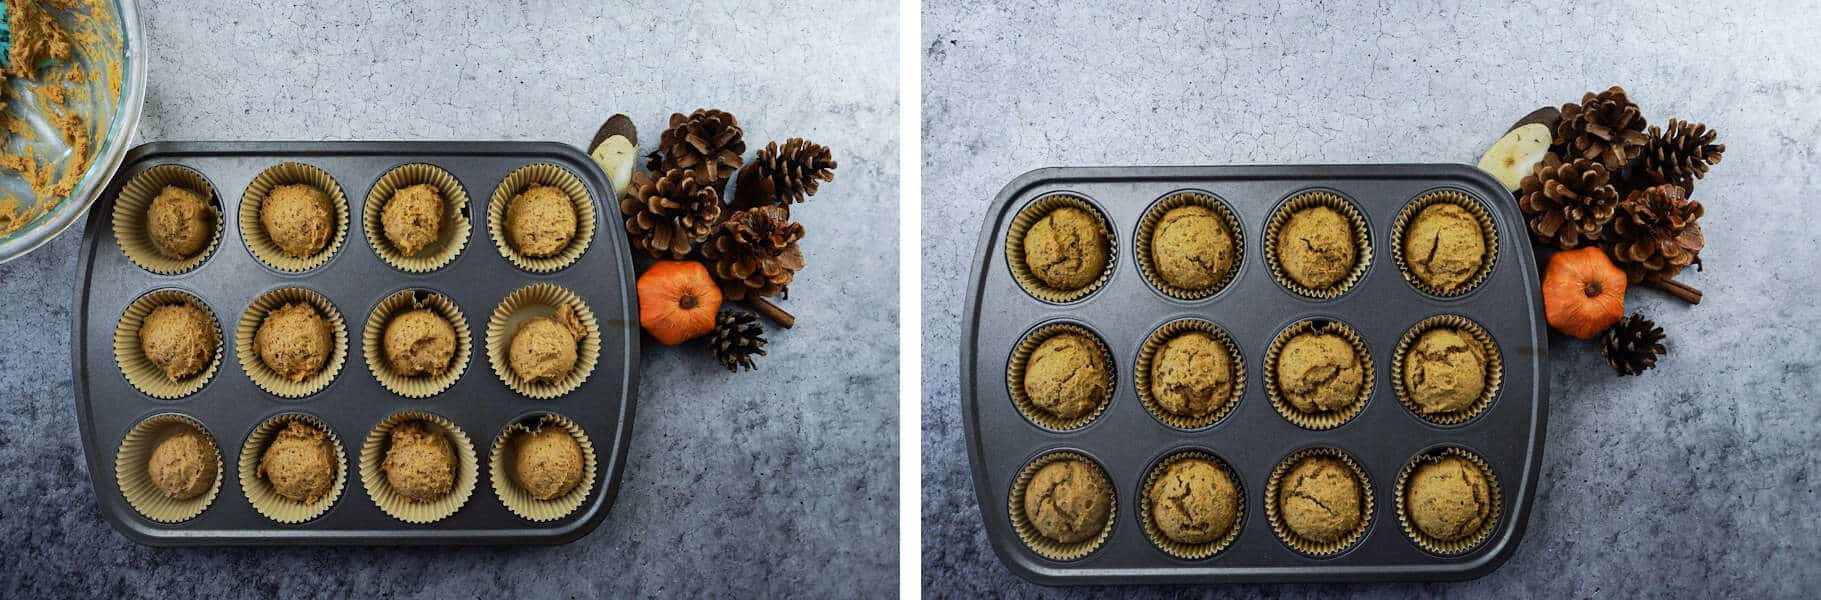 Pumpkin Cupcakes before and after baking in cupcake pan